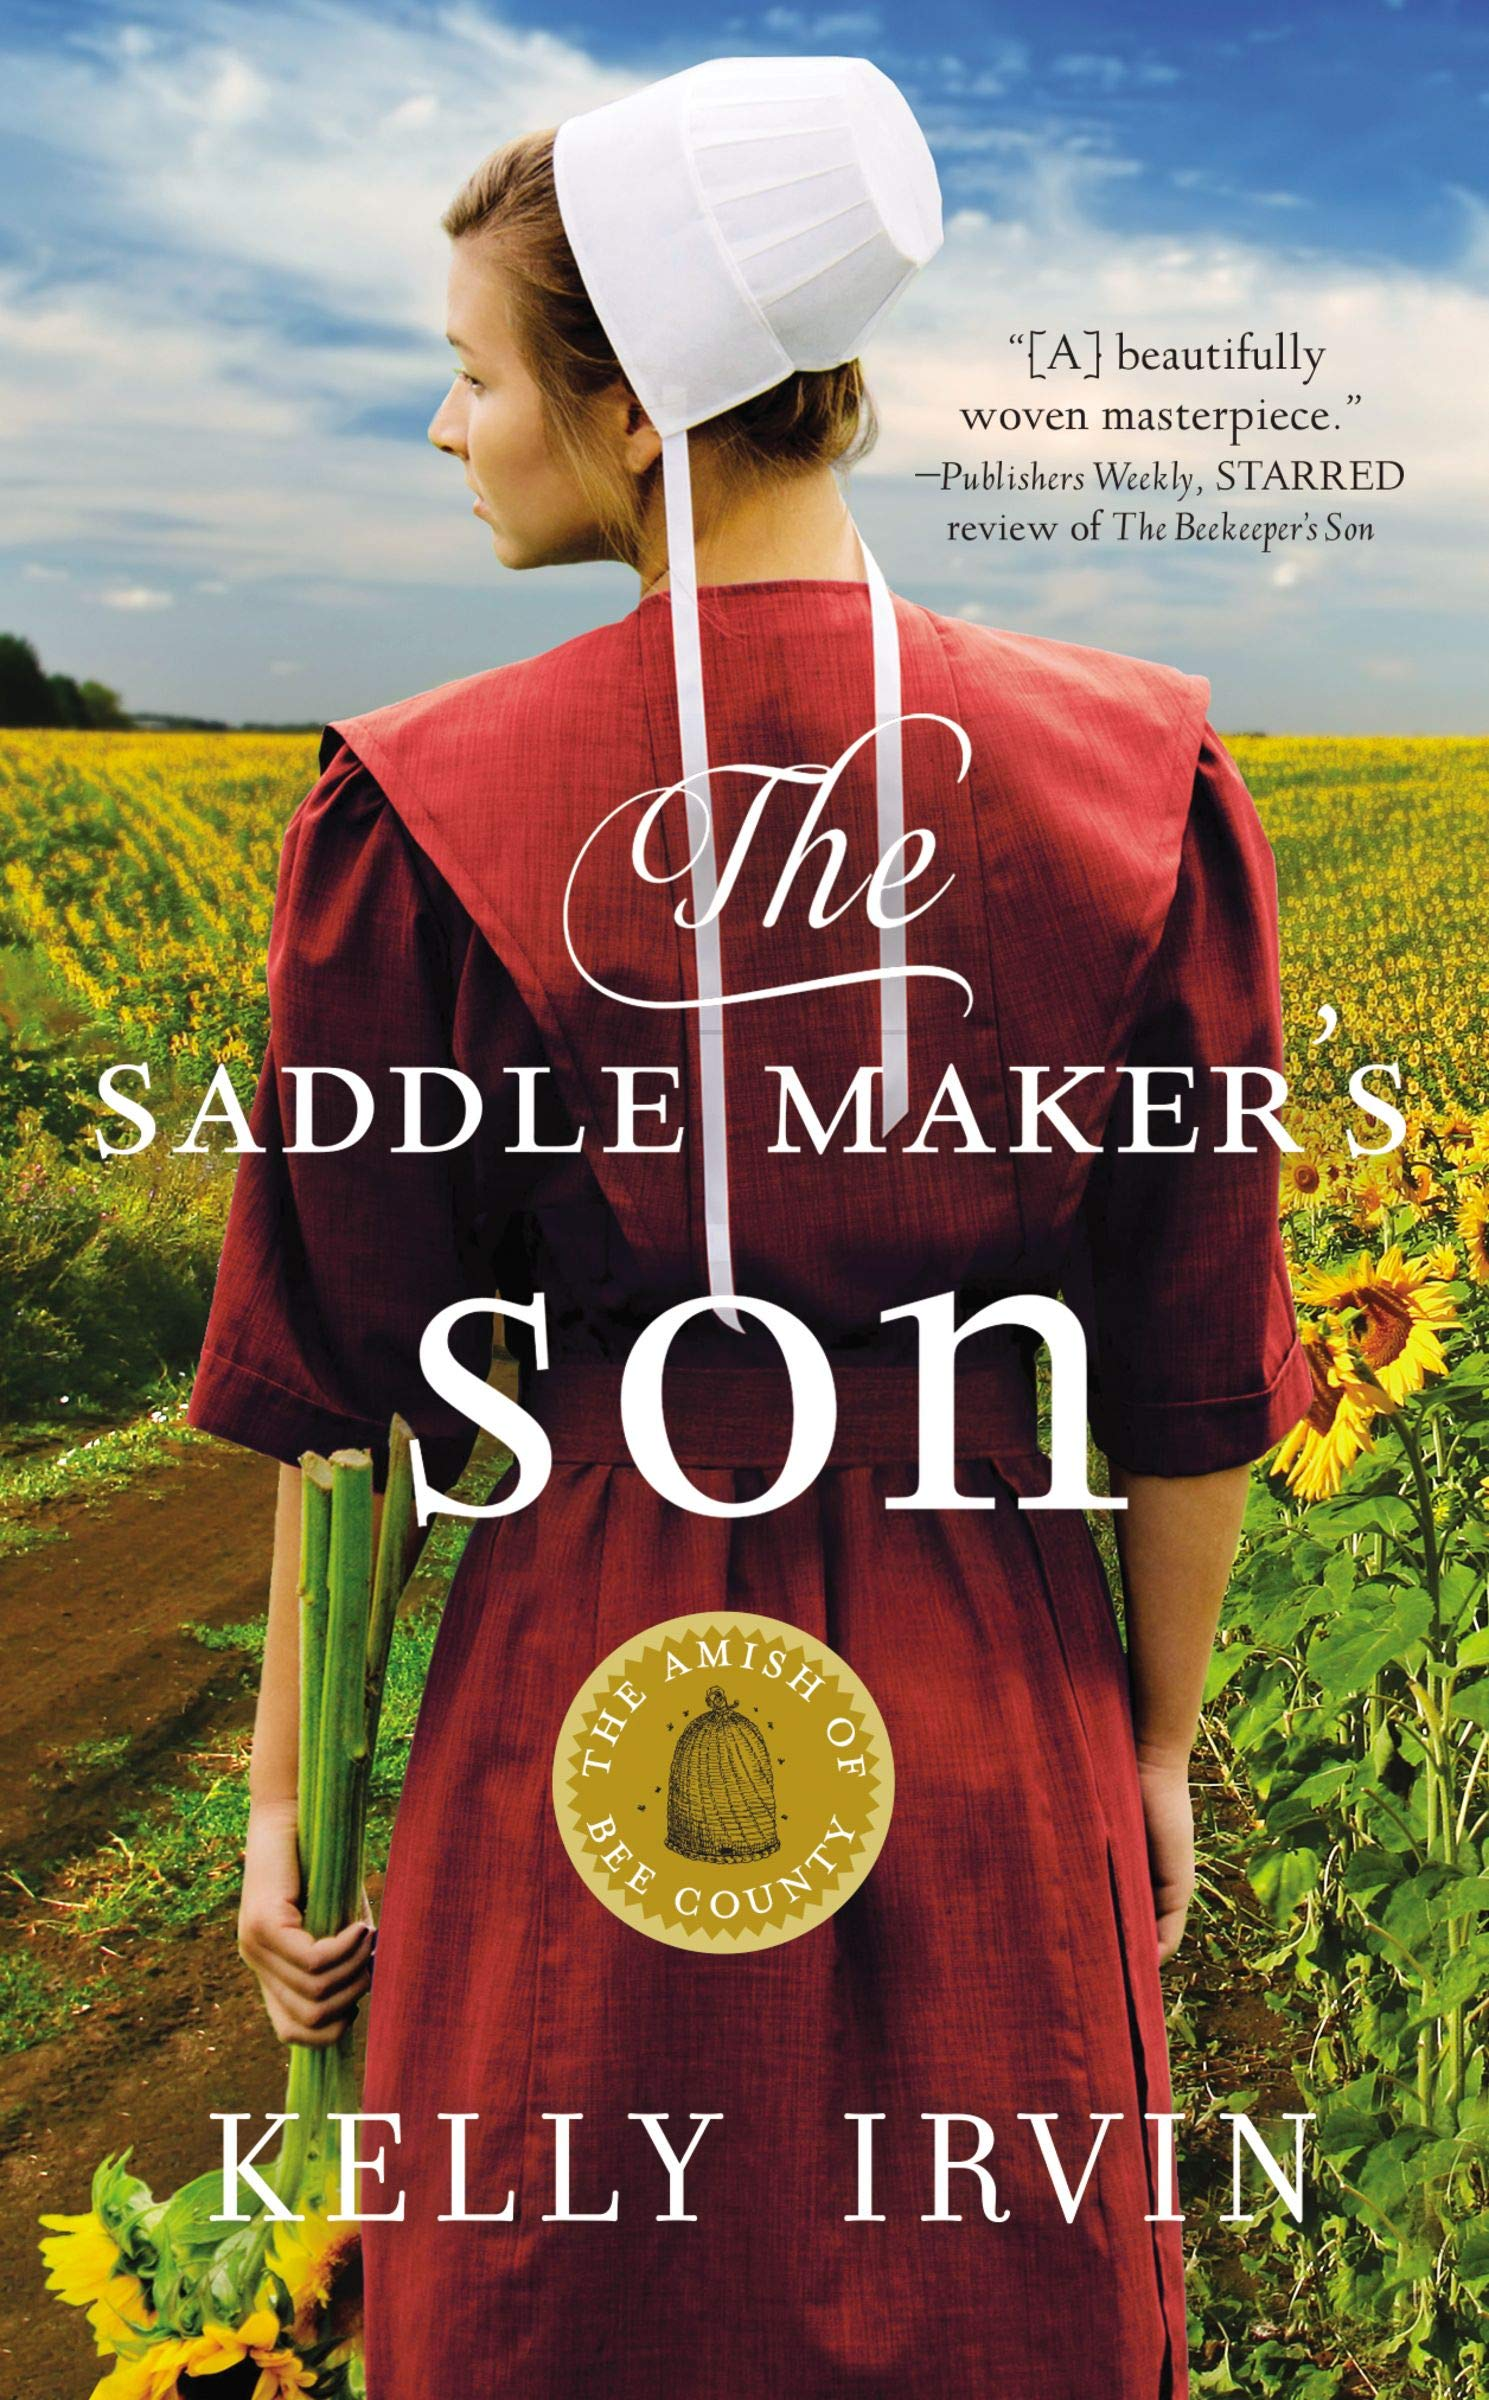 The Saddle Maker's Son (The Amish of Bee County): Kelly Irvin:  9780310354451: Amazon.com: Books